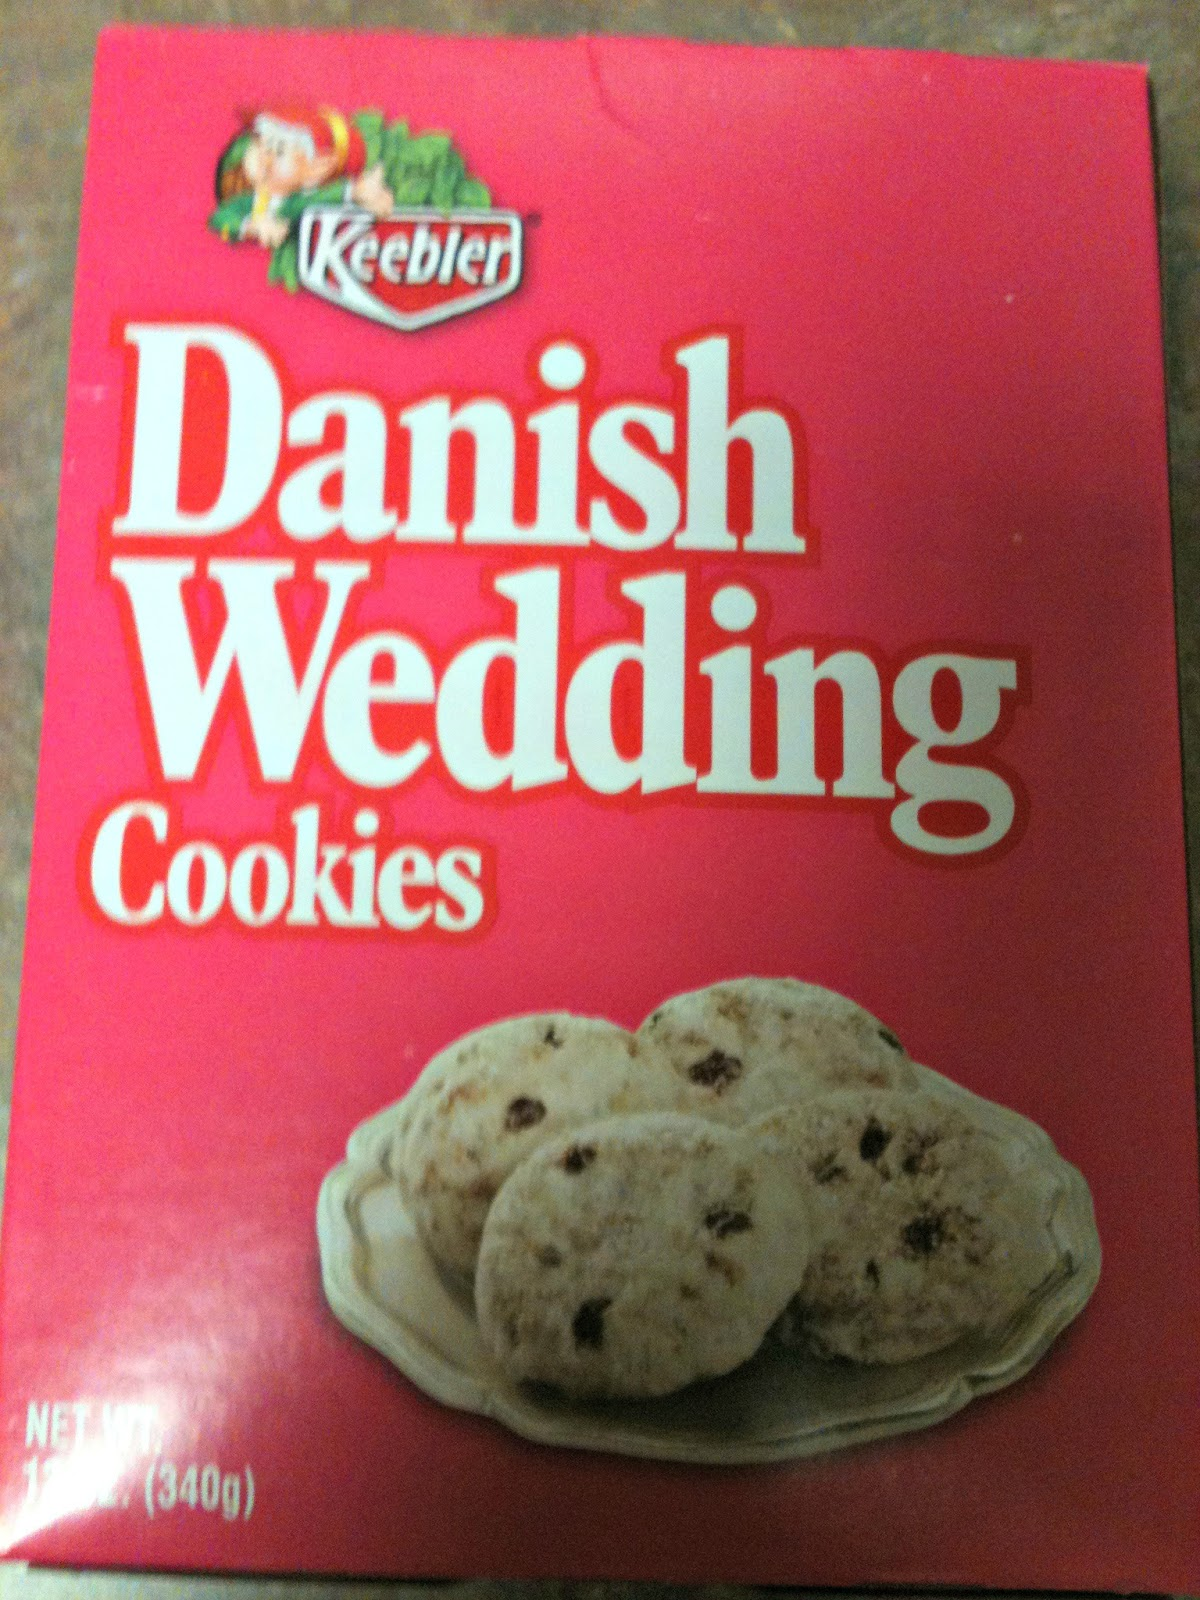 Danish Wedding Cookies.Keebler Danish Wedding Cookies House Cookies